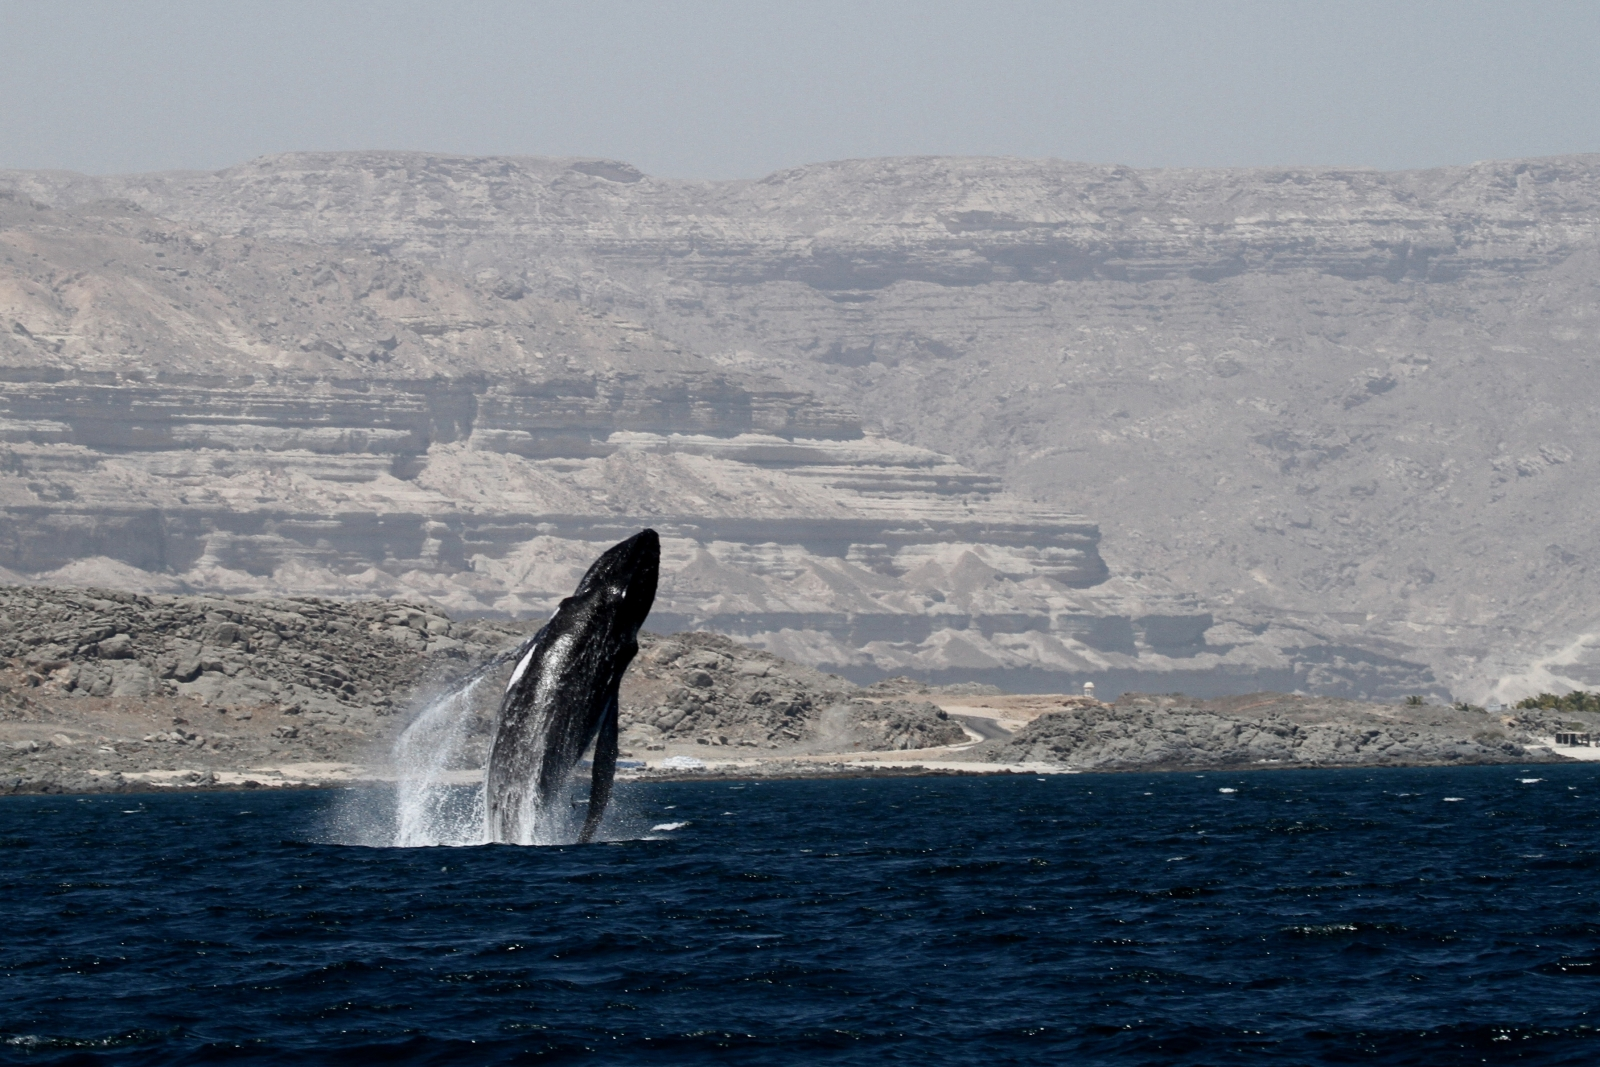 humpback whales starting to recover after decades of